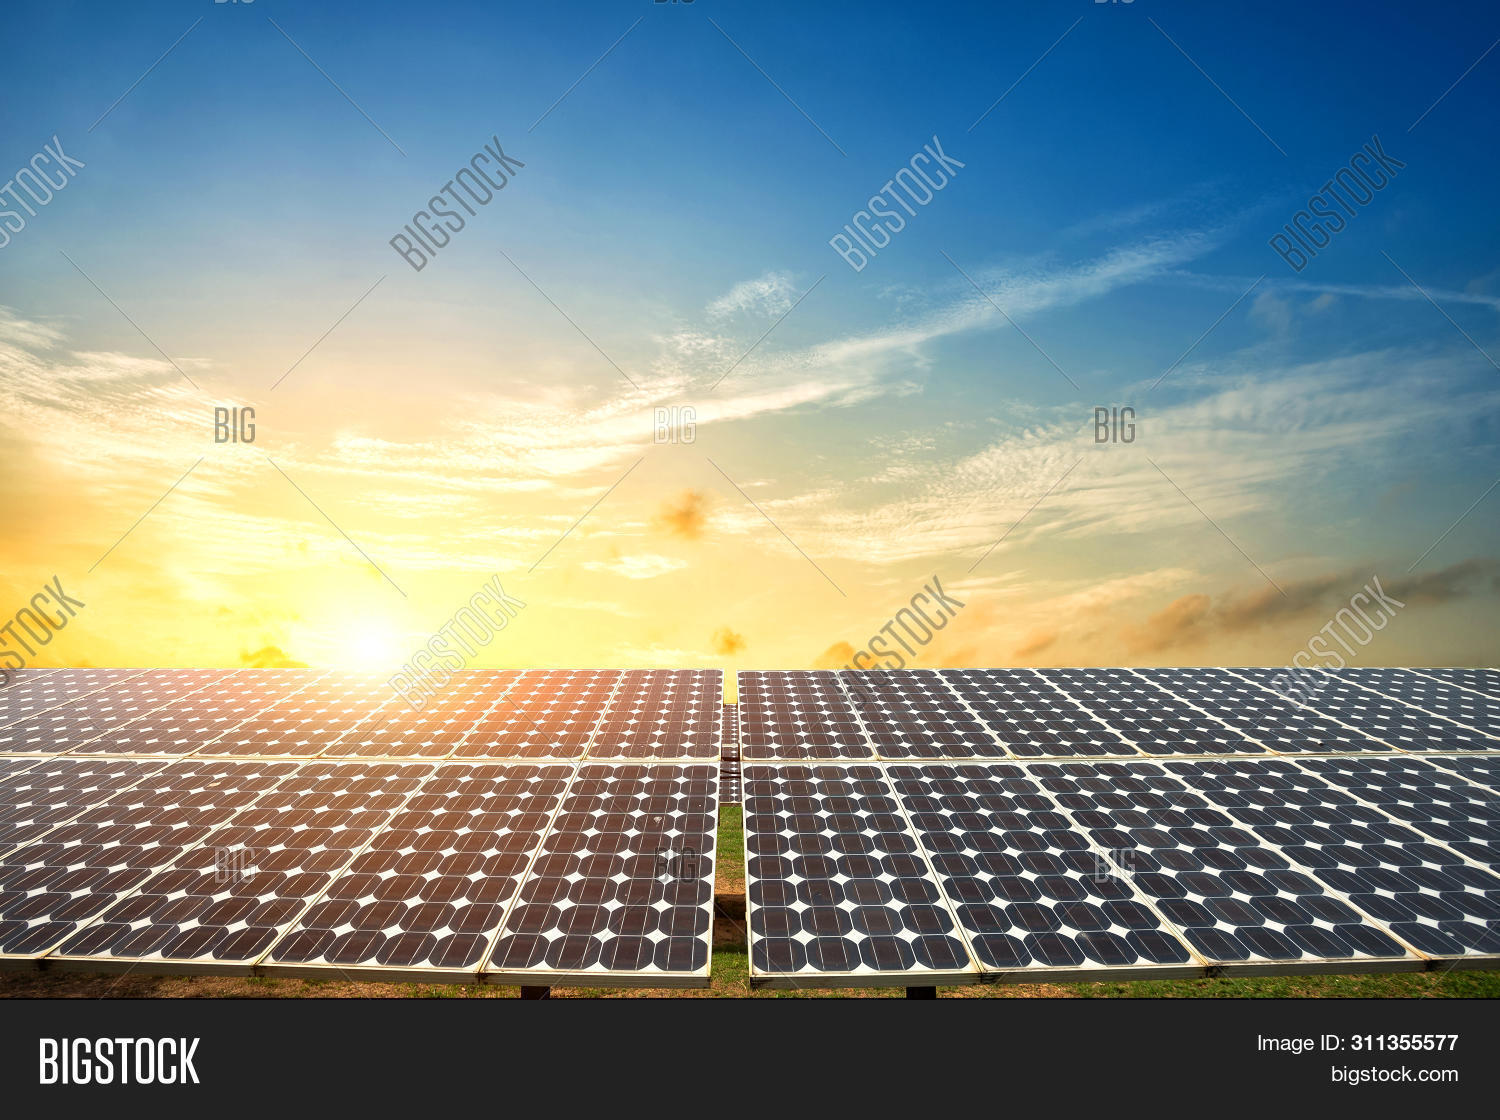 alternative,background,beautiful,blue,business,cell,clean,collector,ecological,ecology,electric,electrical,electricity,energy,environment,environmental,equipment,farm,field,future,futuristic,generation,generator,global,green,industry,innovation,light,modern,nature,panel,pattern,photovoltaic,plant,power,protection,reflection,renewable,science,sky,solar,summer,sun,sunlight,sunny,sunset,supply,system,technology,warming